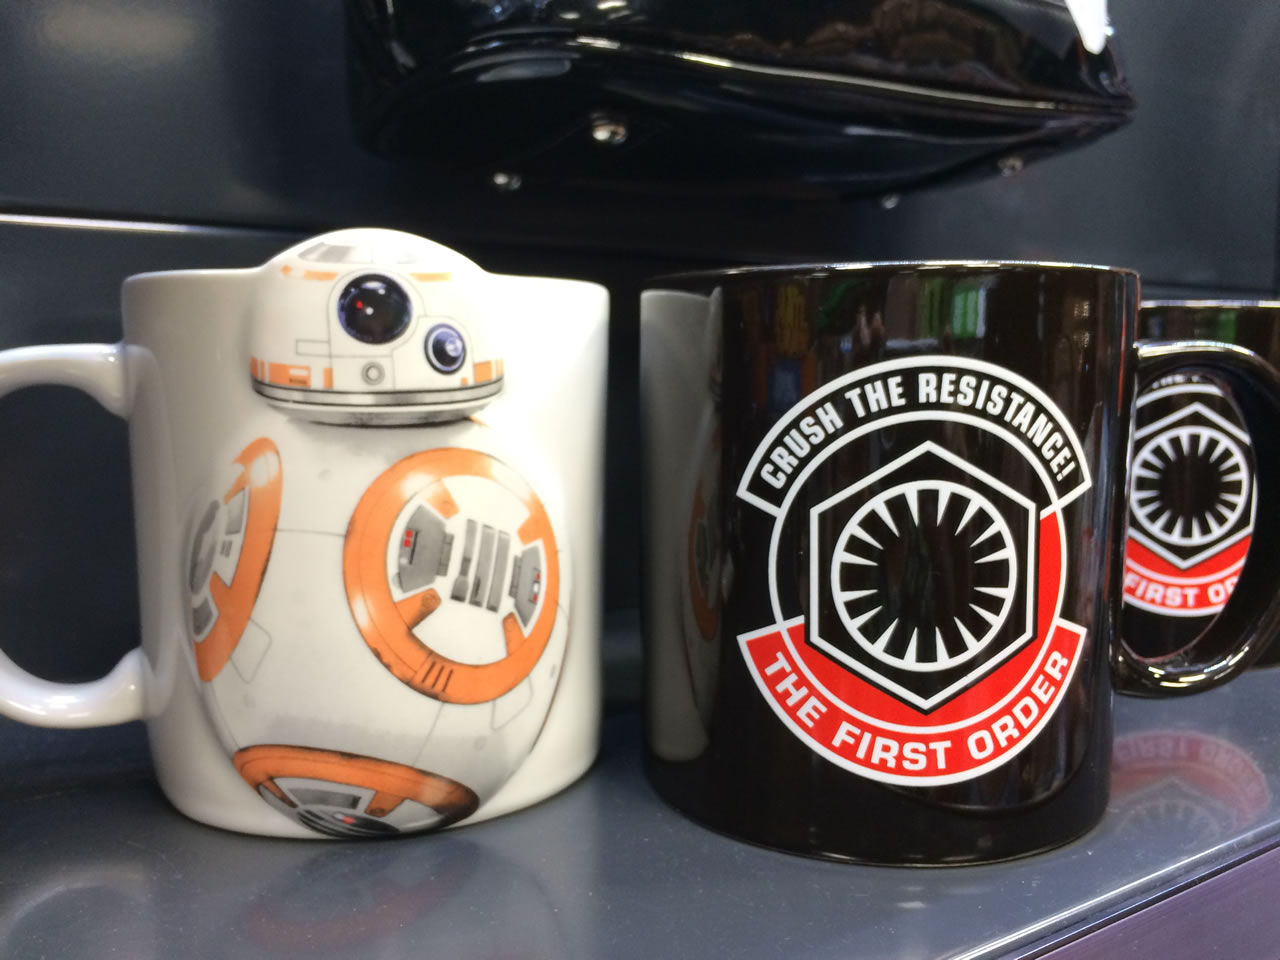 17 thinkgeek store - bb8 and first order mugs